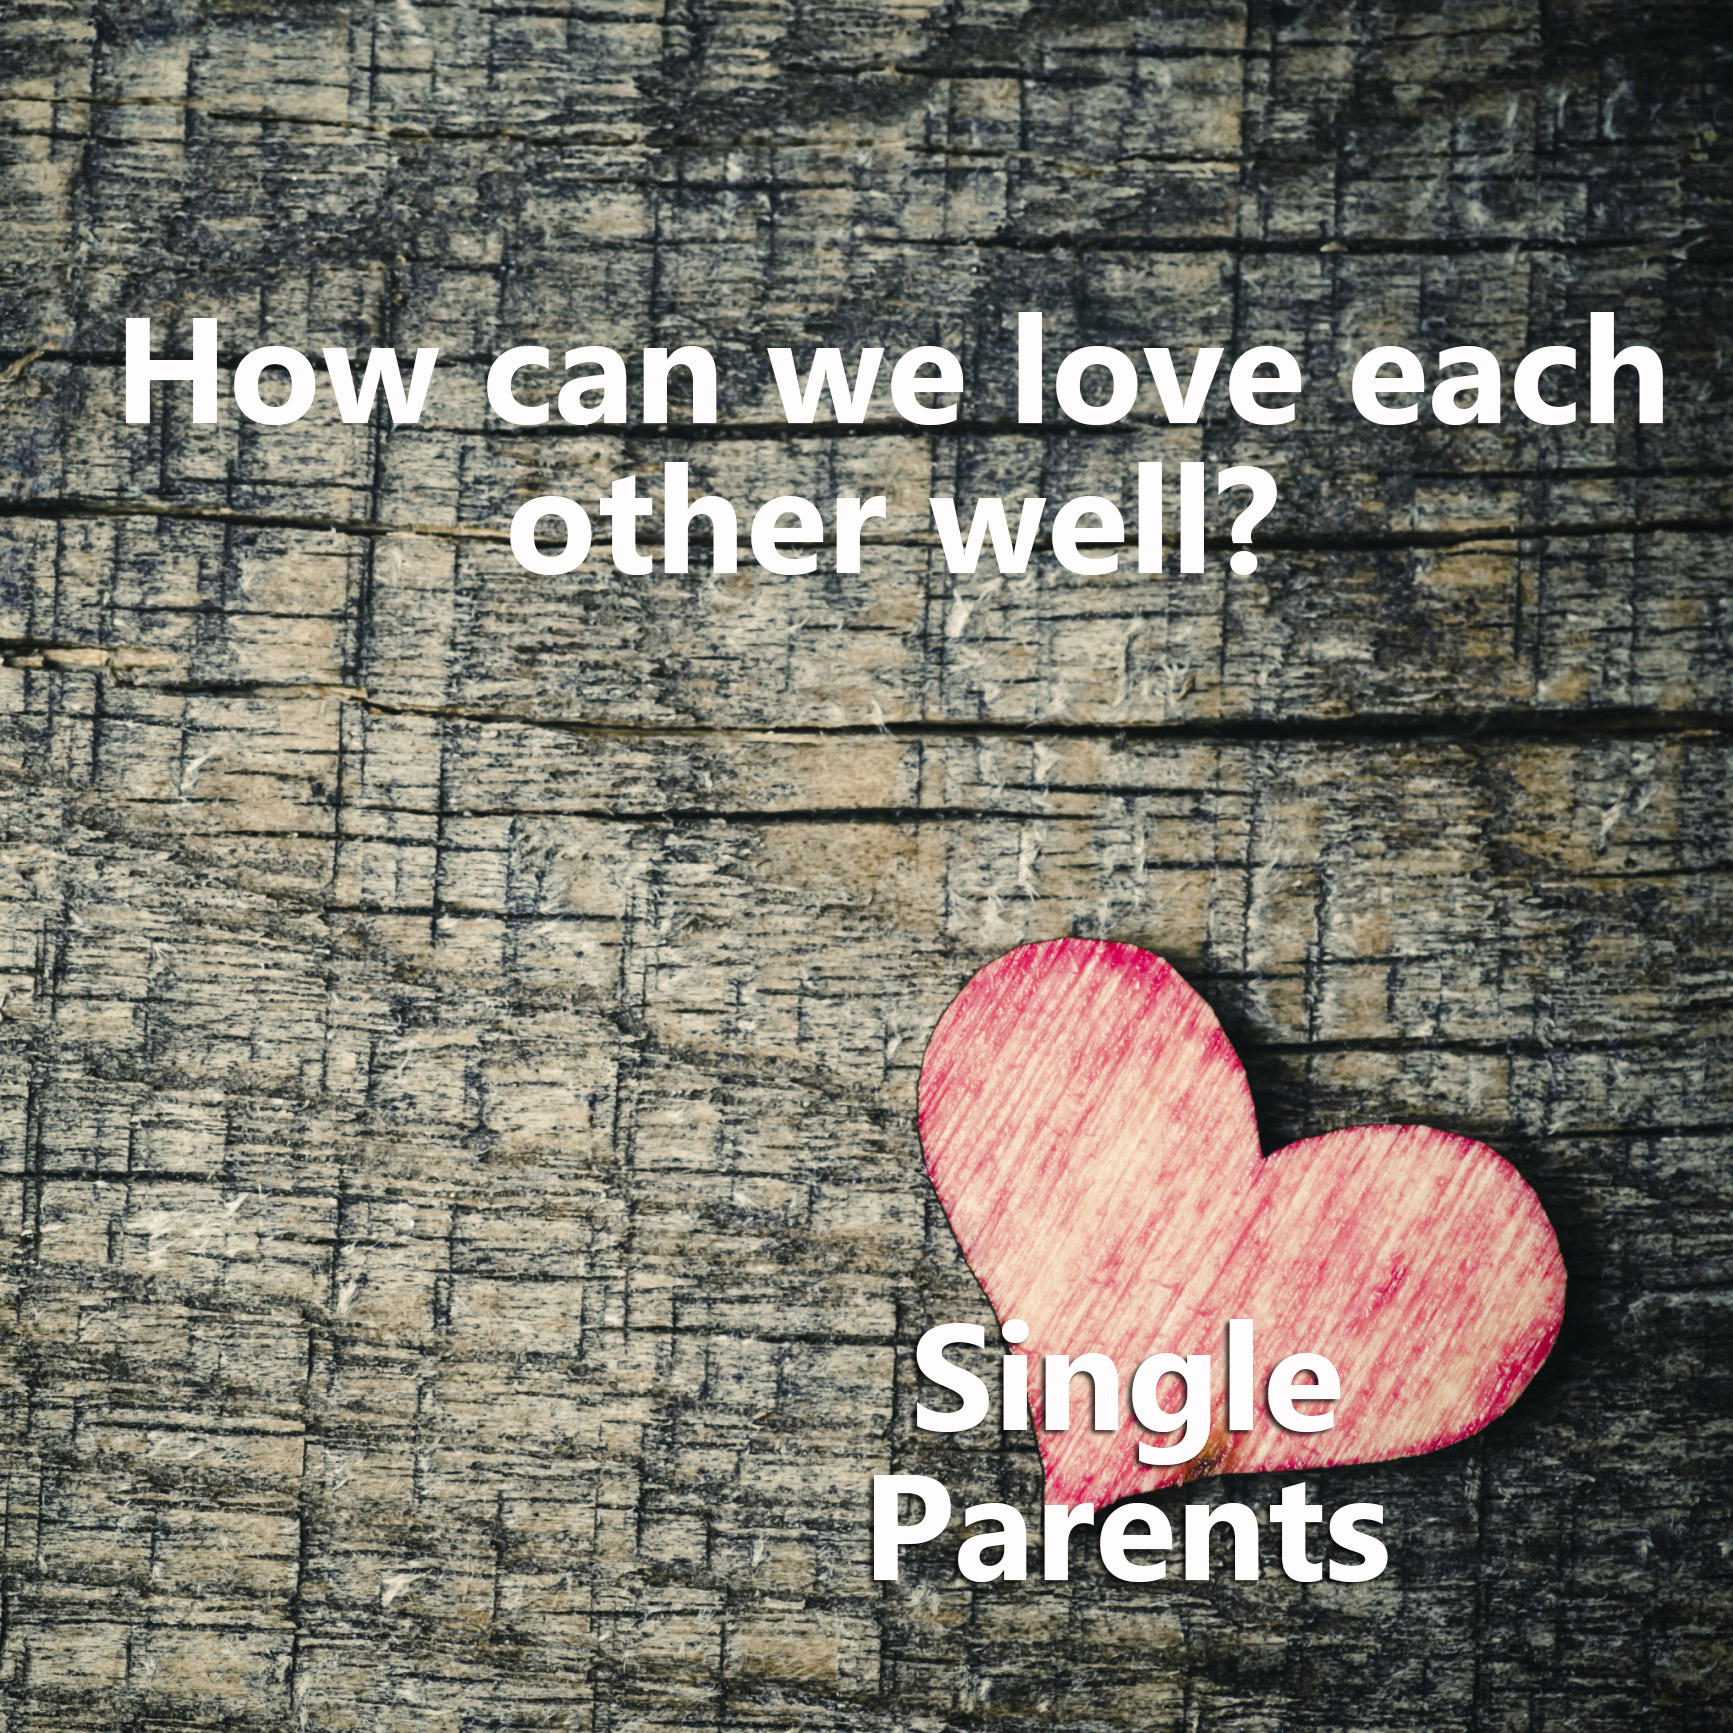 Loving Single Parents Well